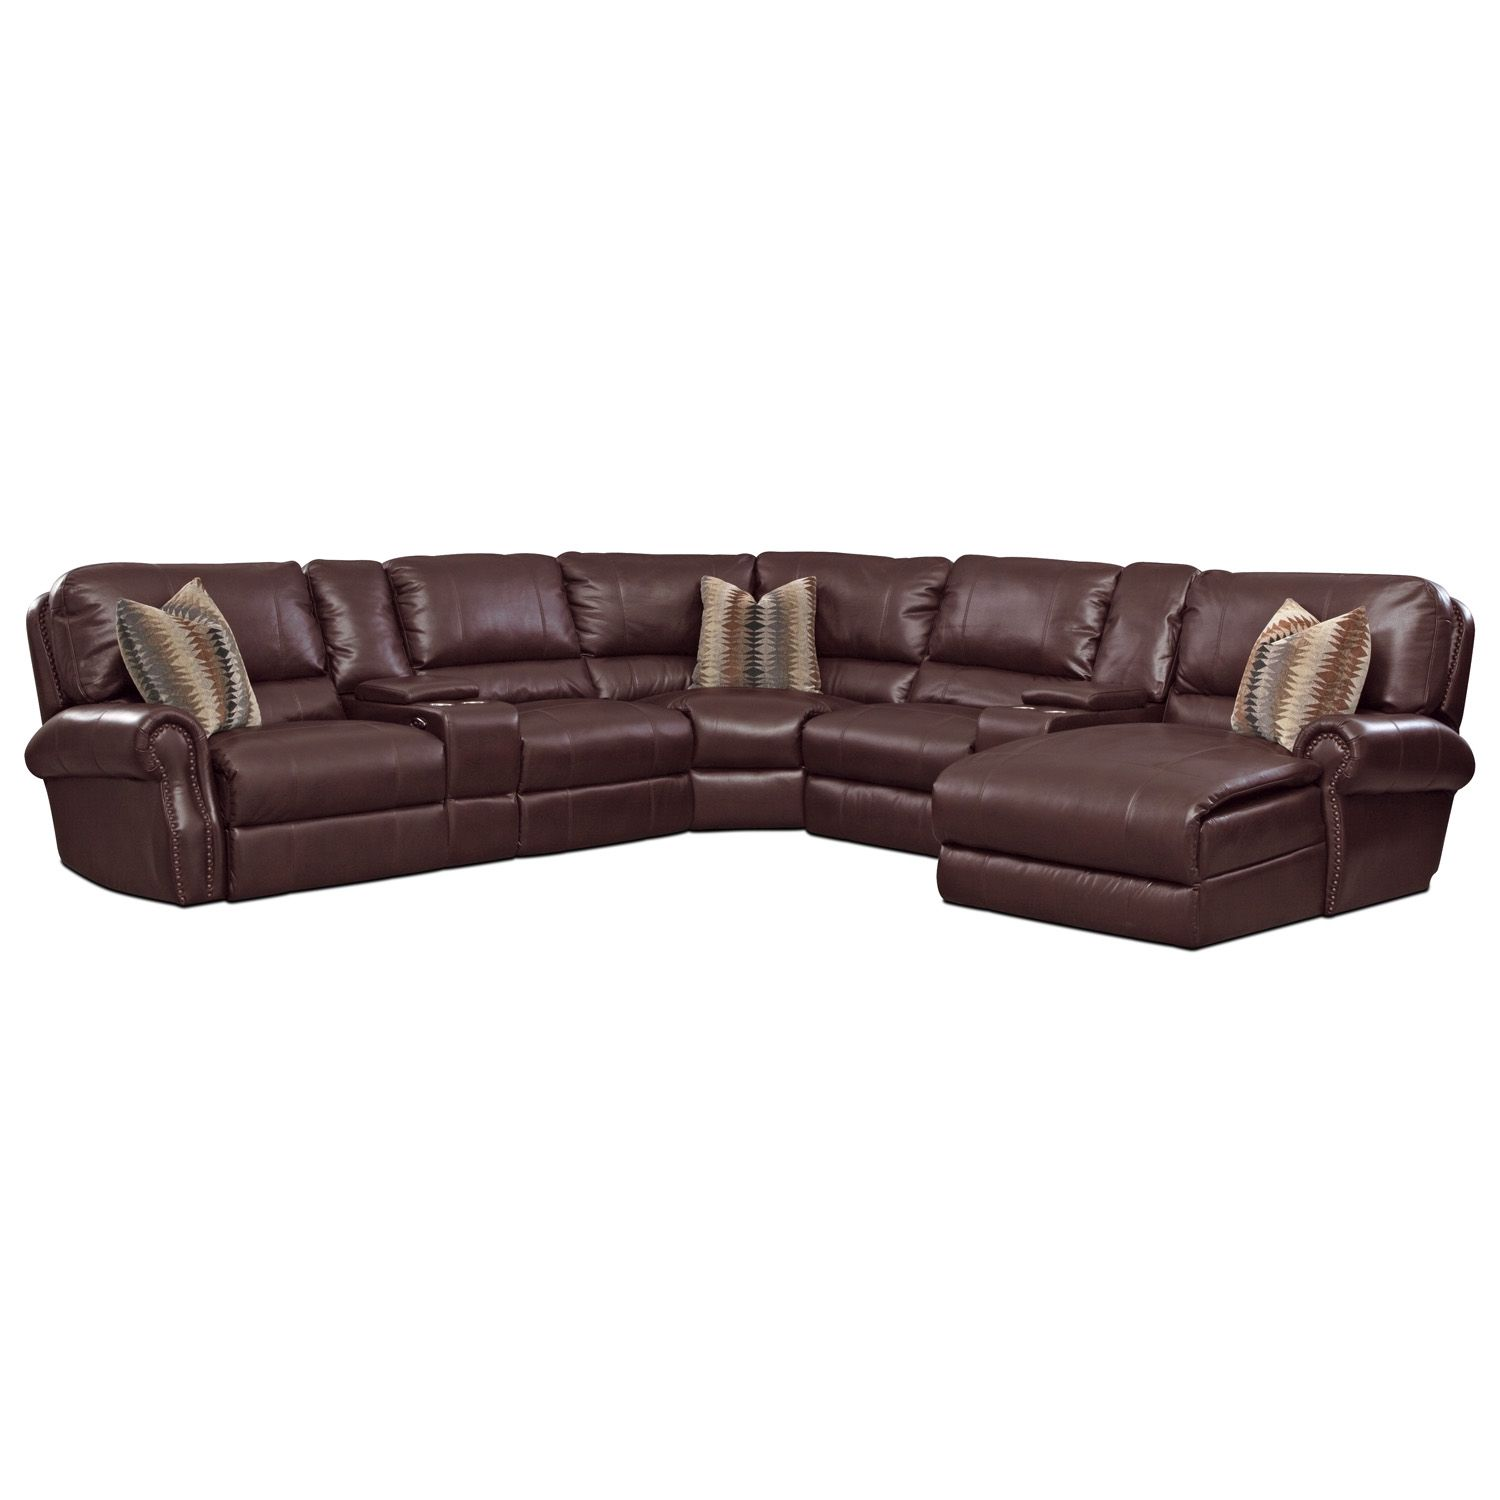 American Signature Furniture Princeton Leather 5 Pc Power